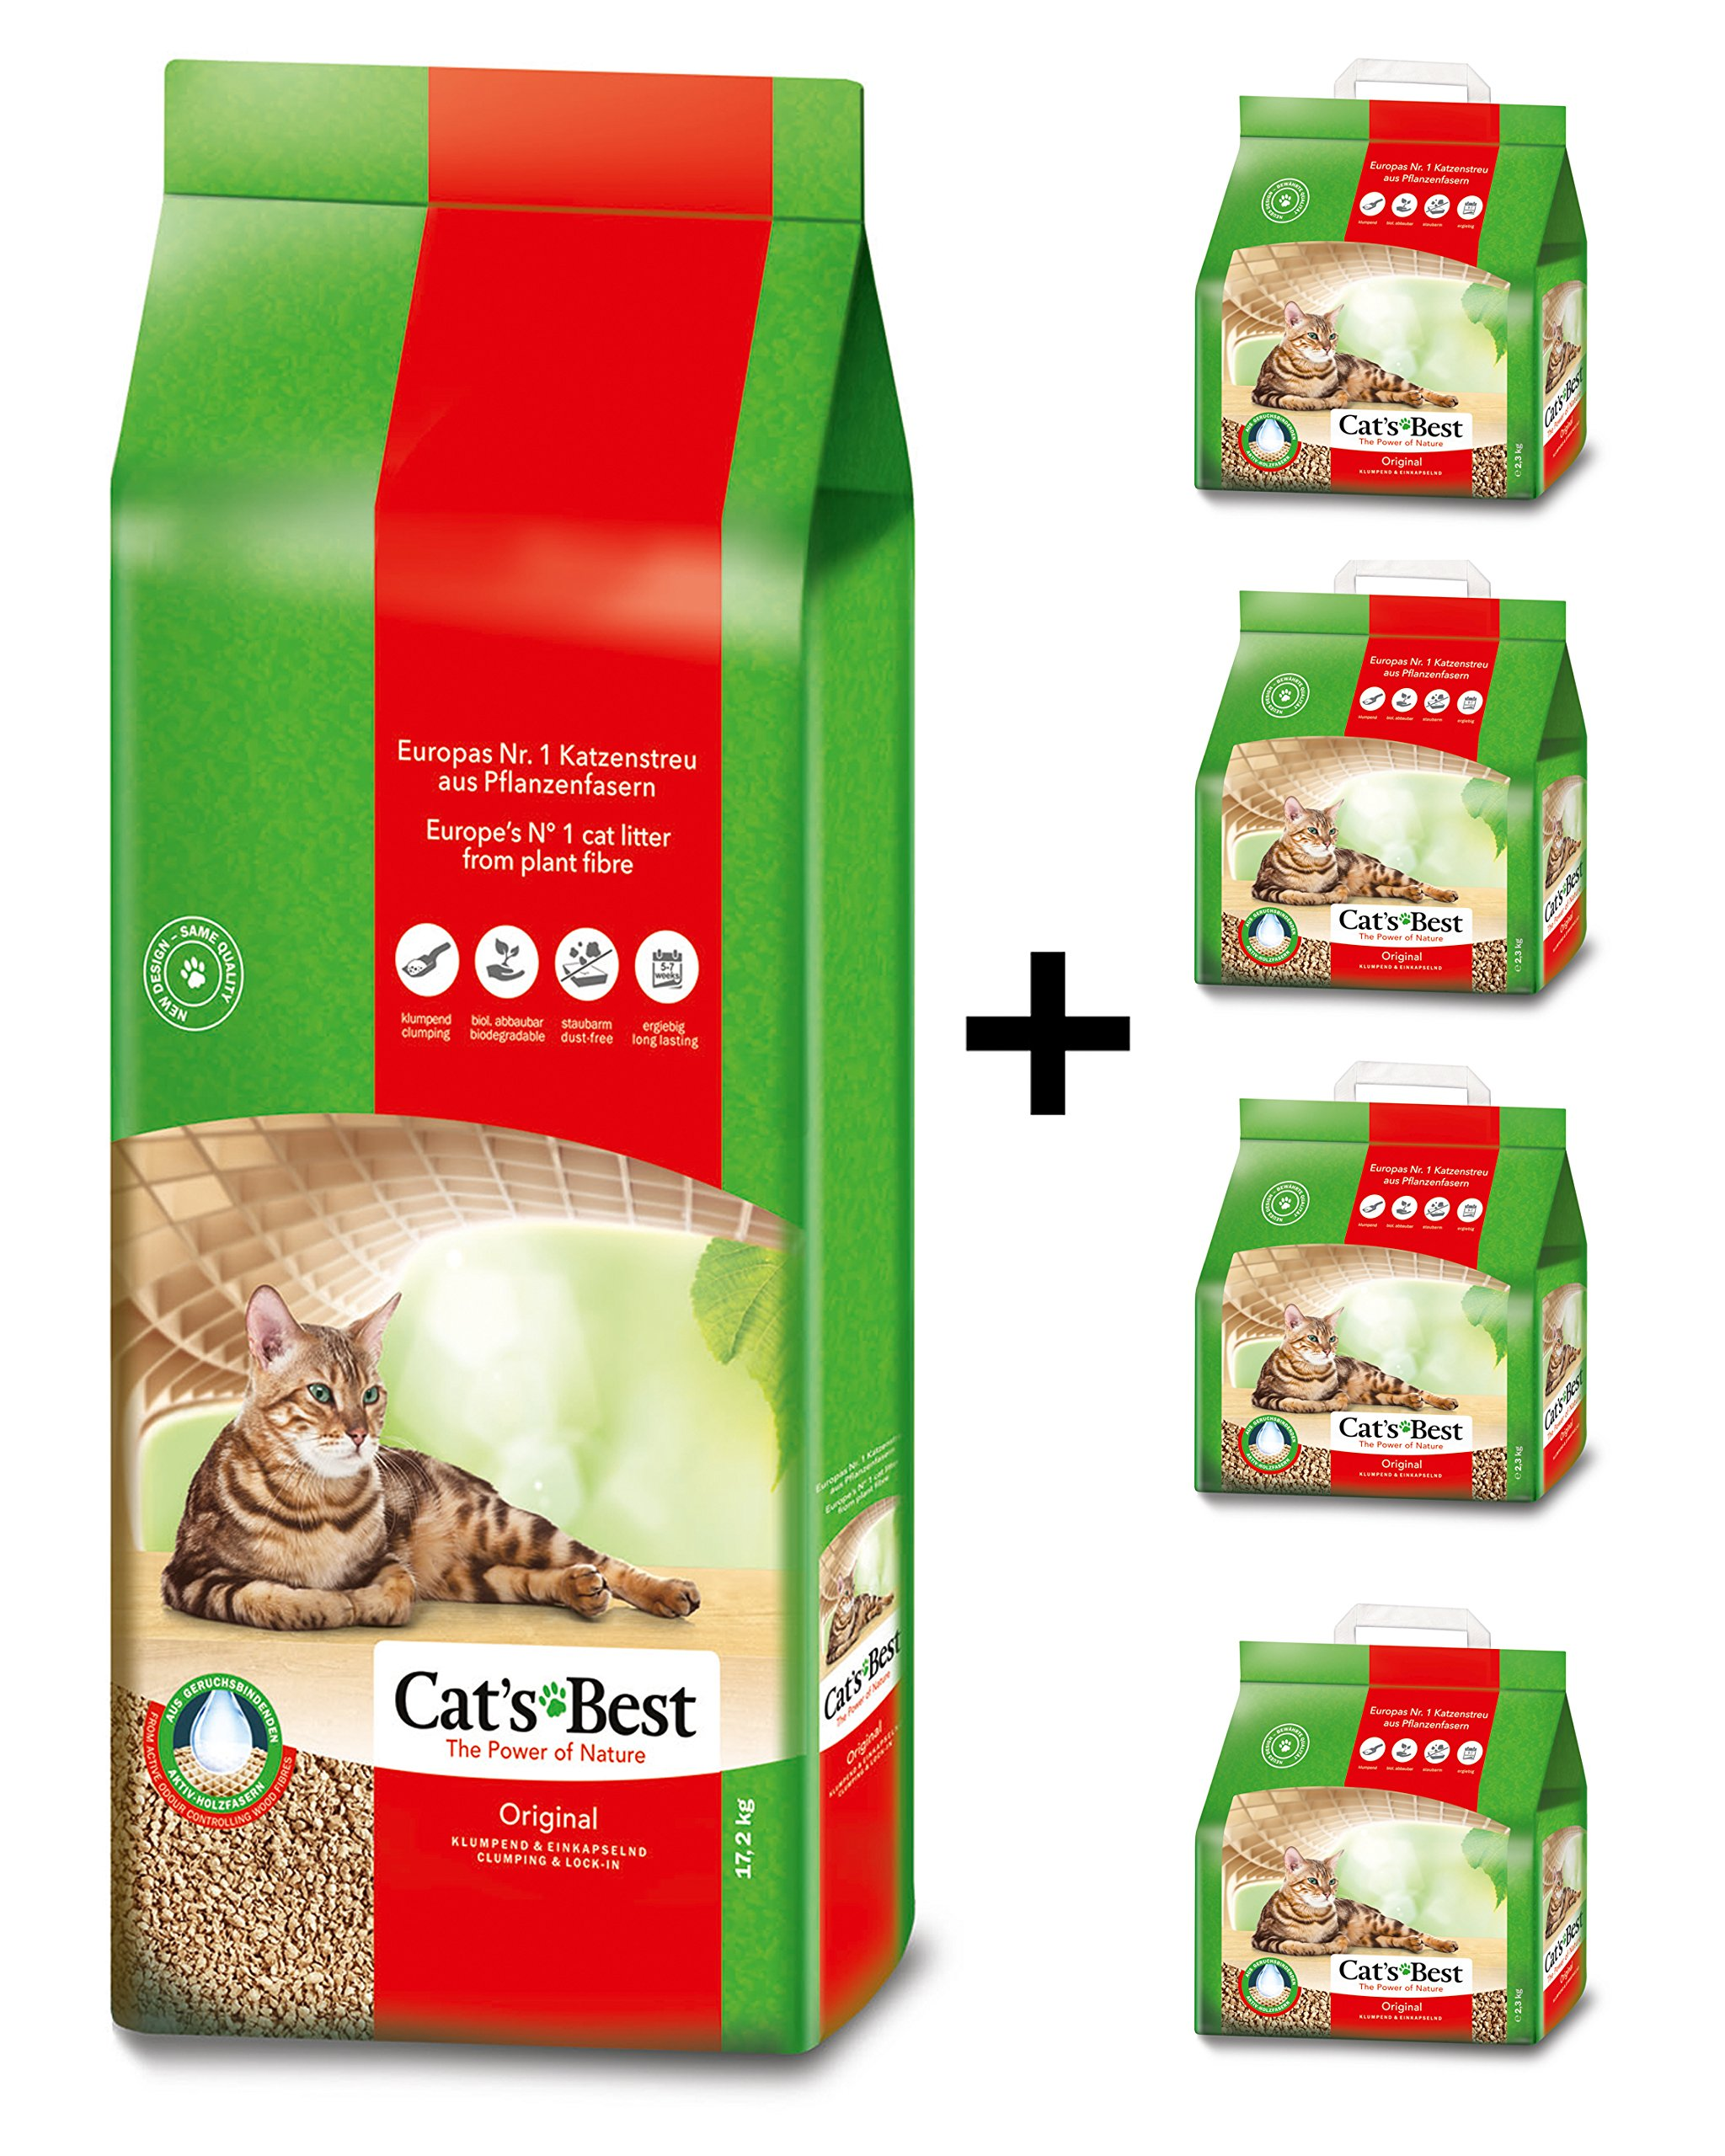 Cats Best Oko Plus 60 Litres Buy Online In Mongolia At Desertcart